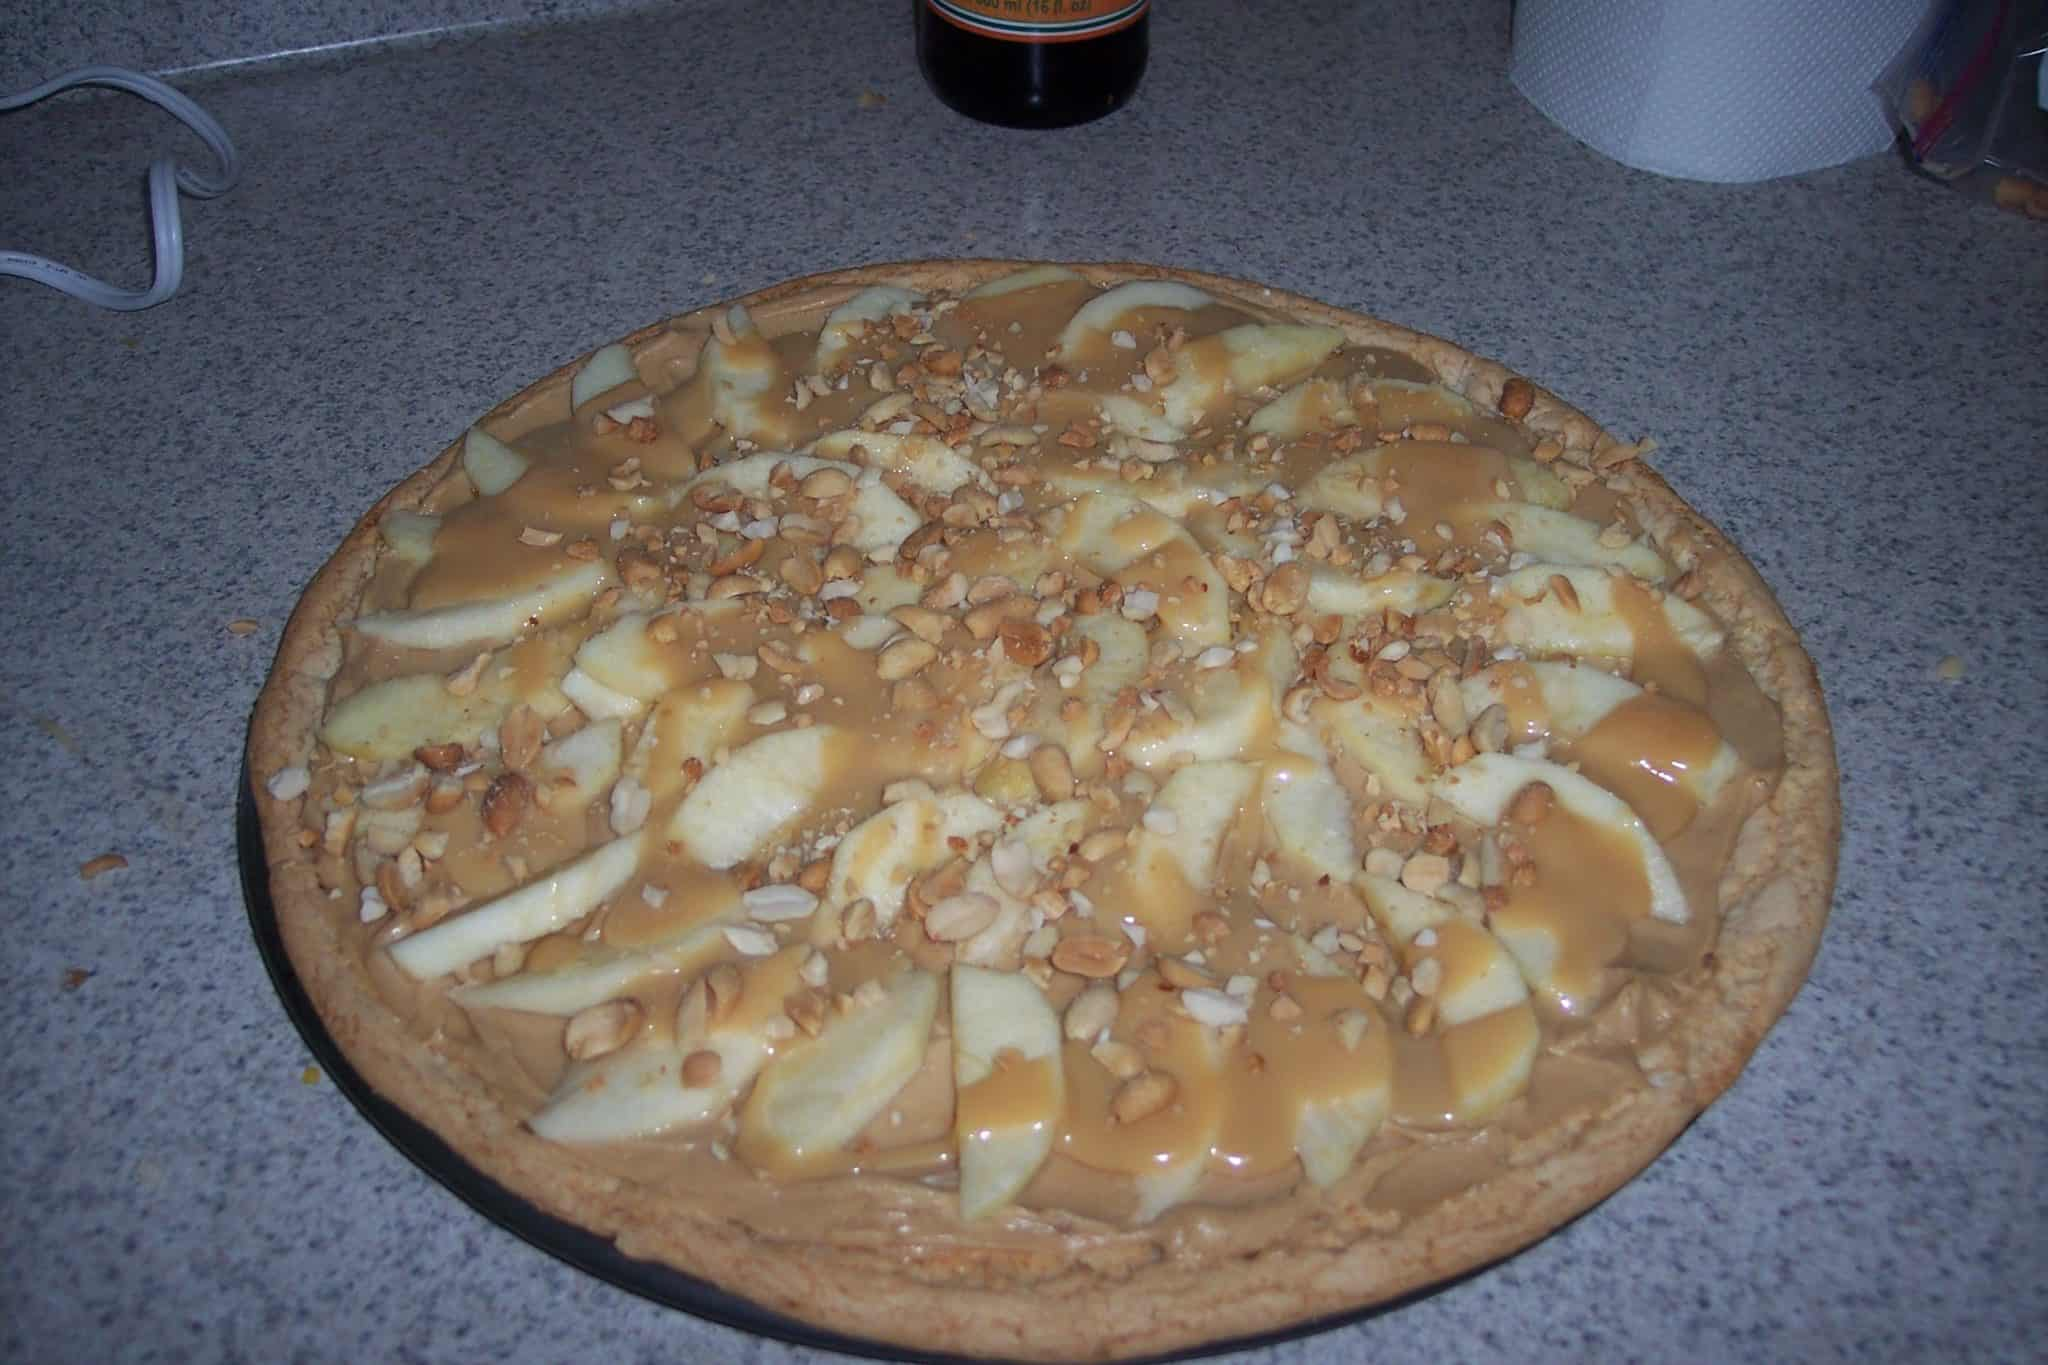 Caramel Apple Pizza - Saving You Dinero